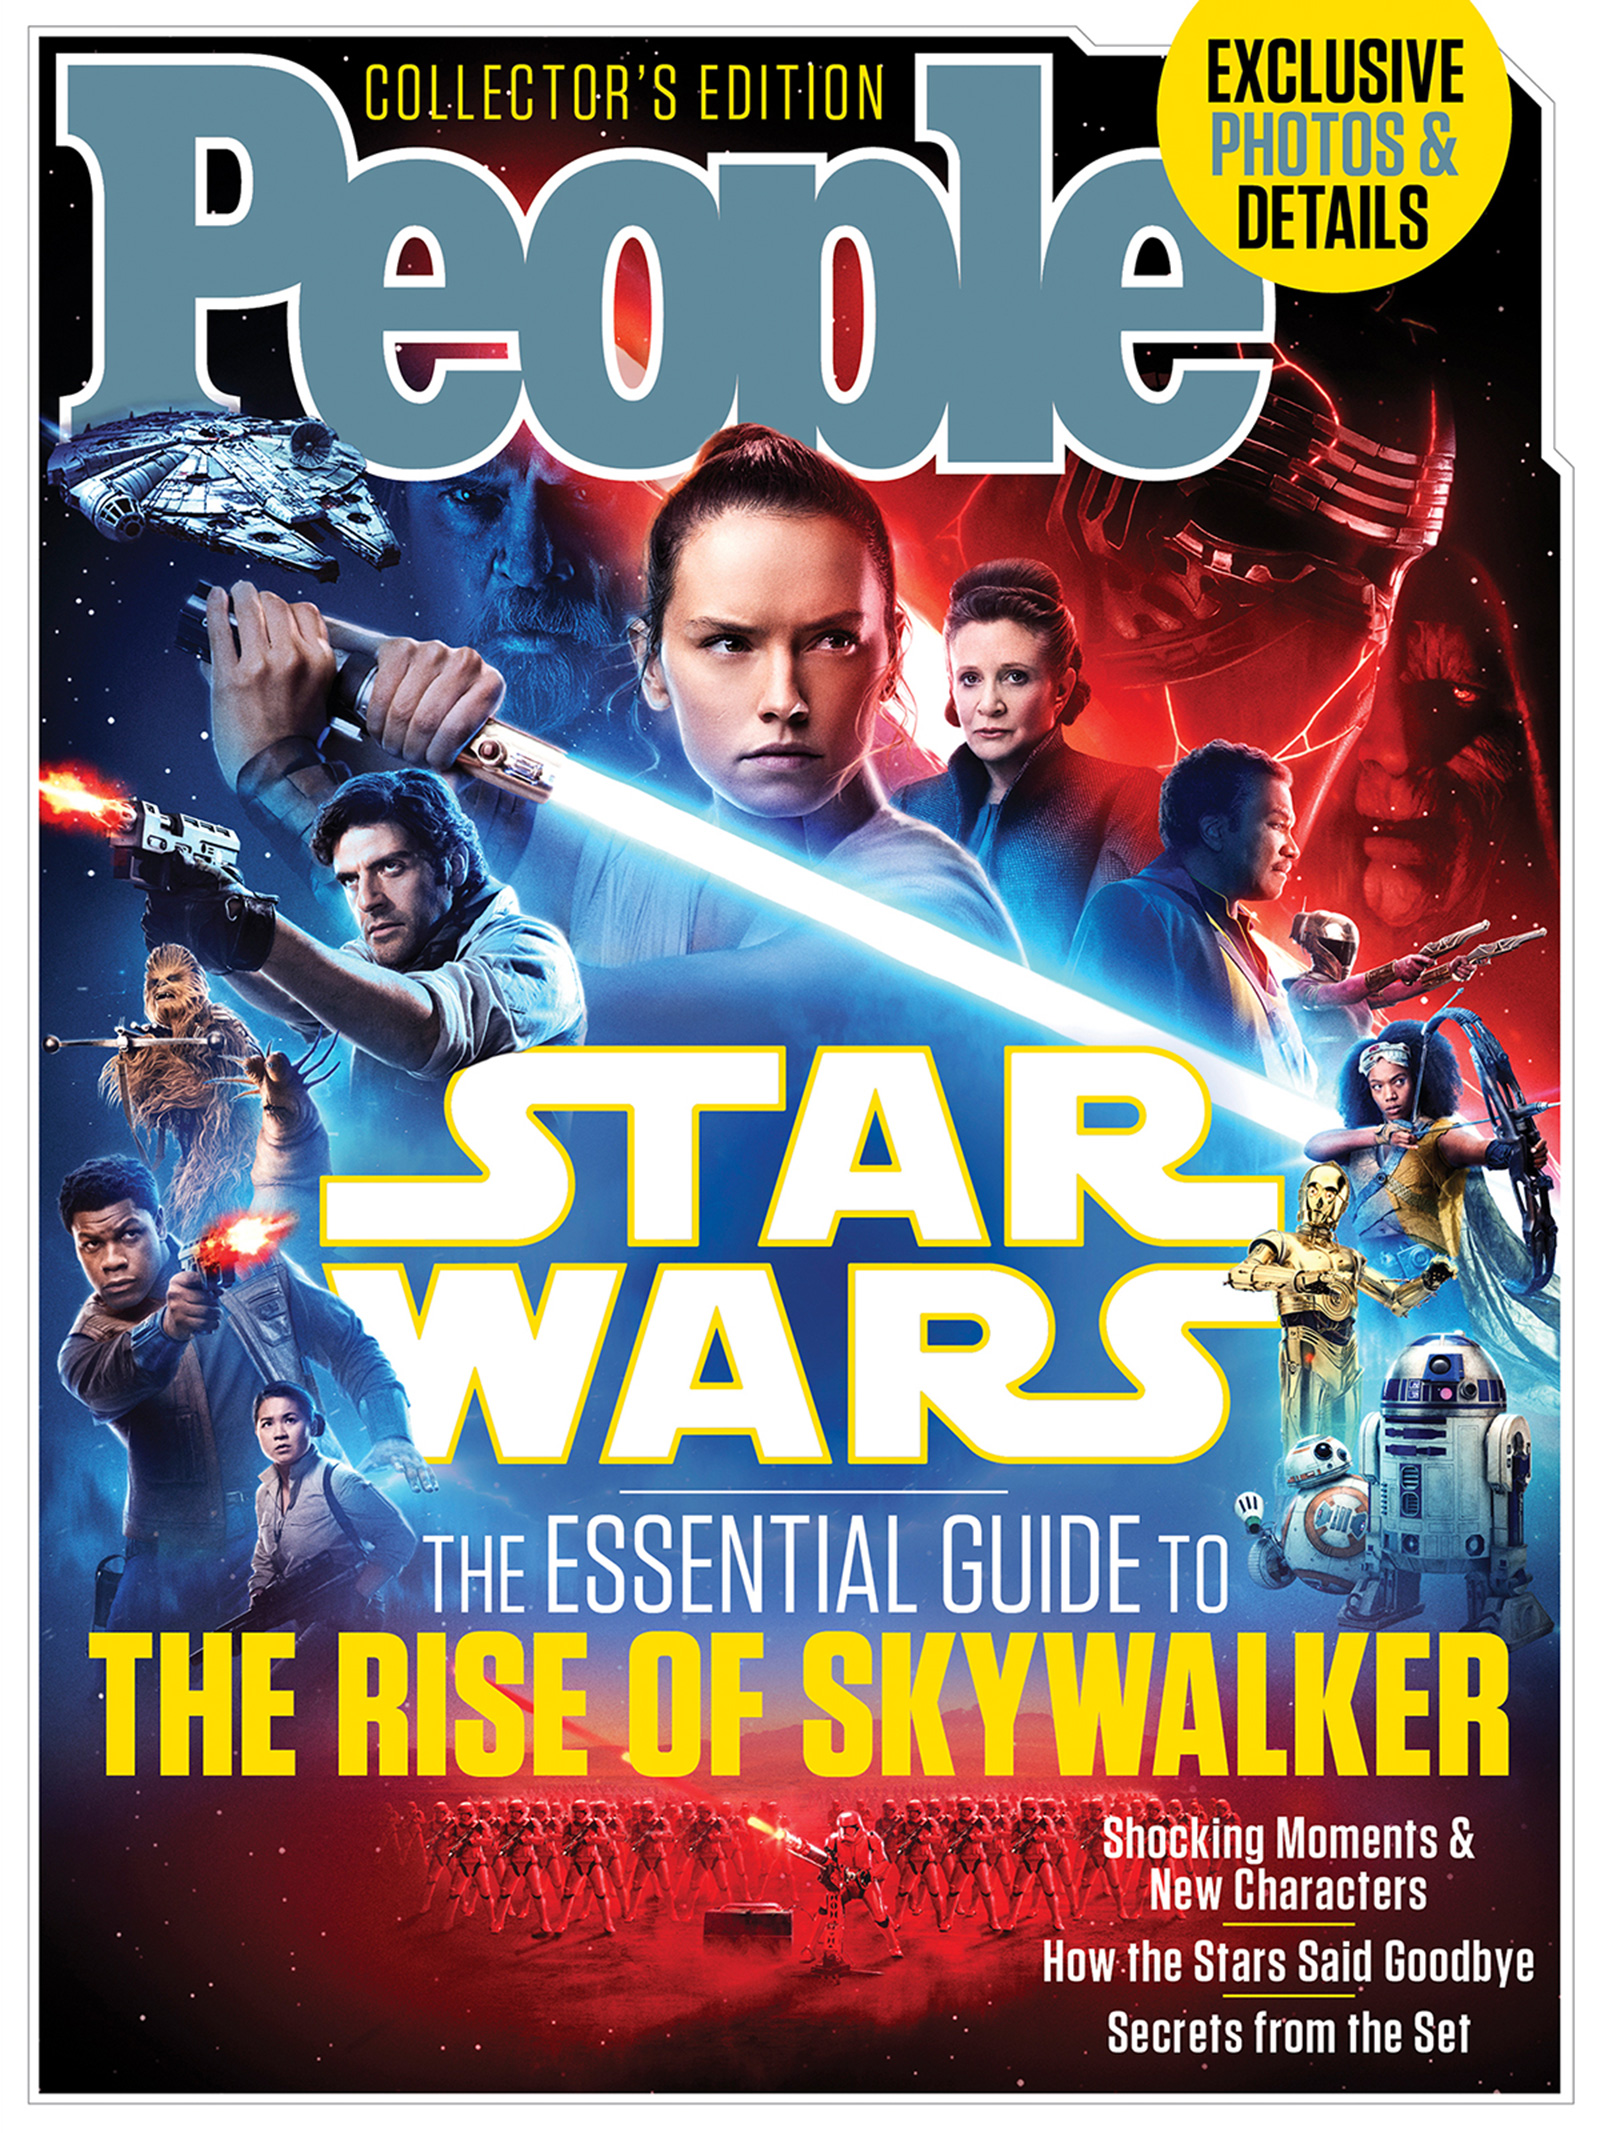 PEOPLEs Essential Guide To The Rise Of Skywalker